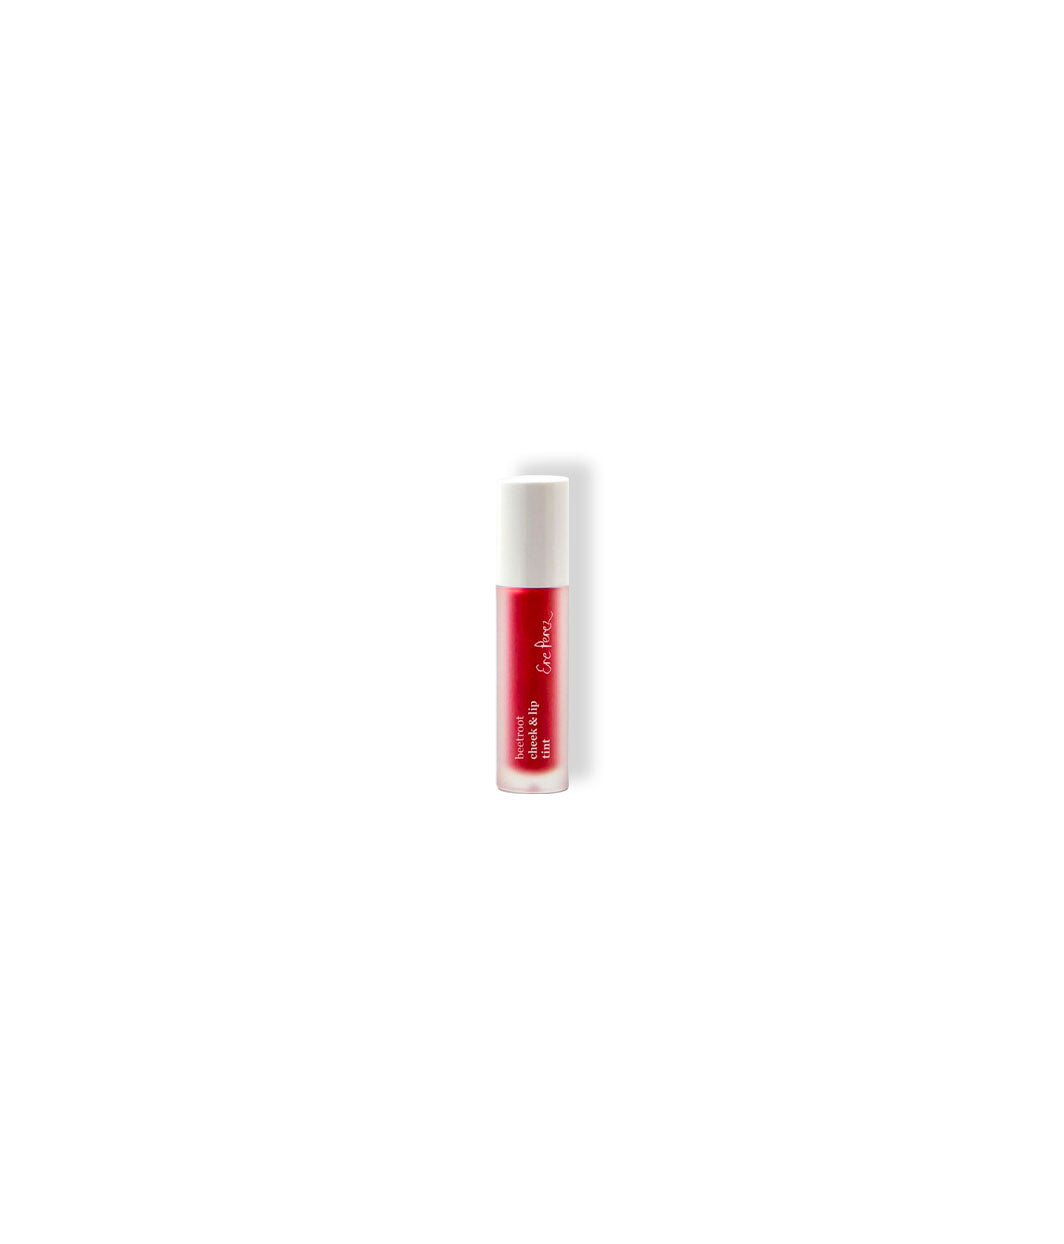 Beetroot Cheek & Lip Tint - LEMON LAINE - Blush - Ere Perez